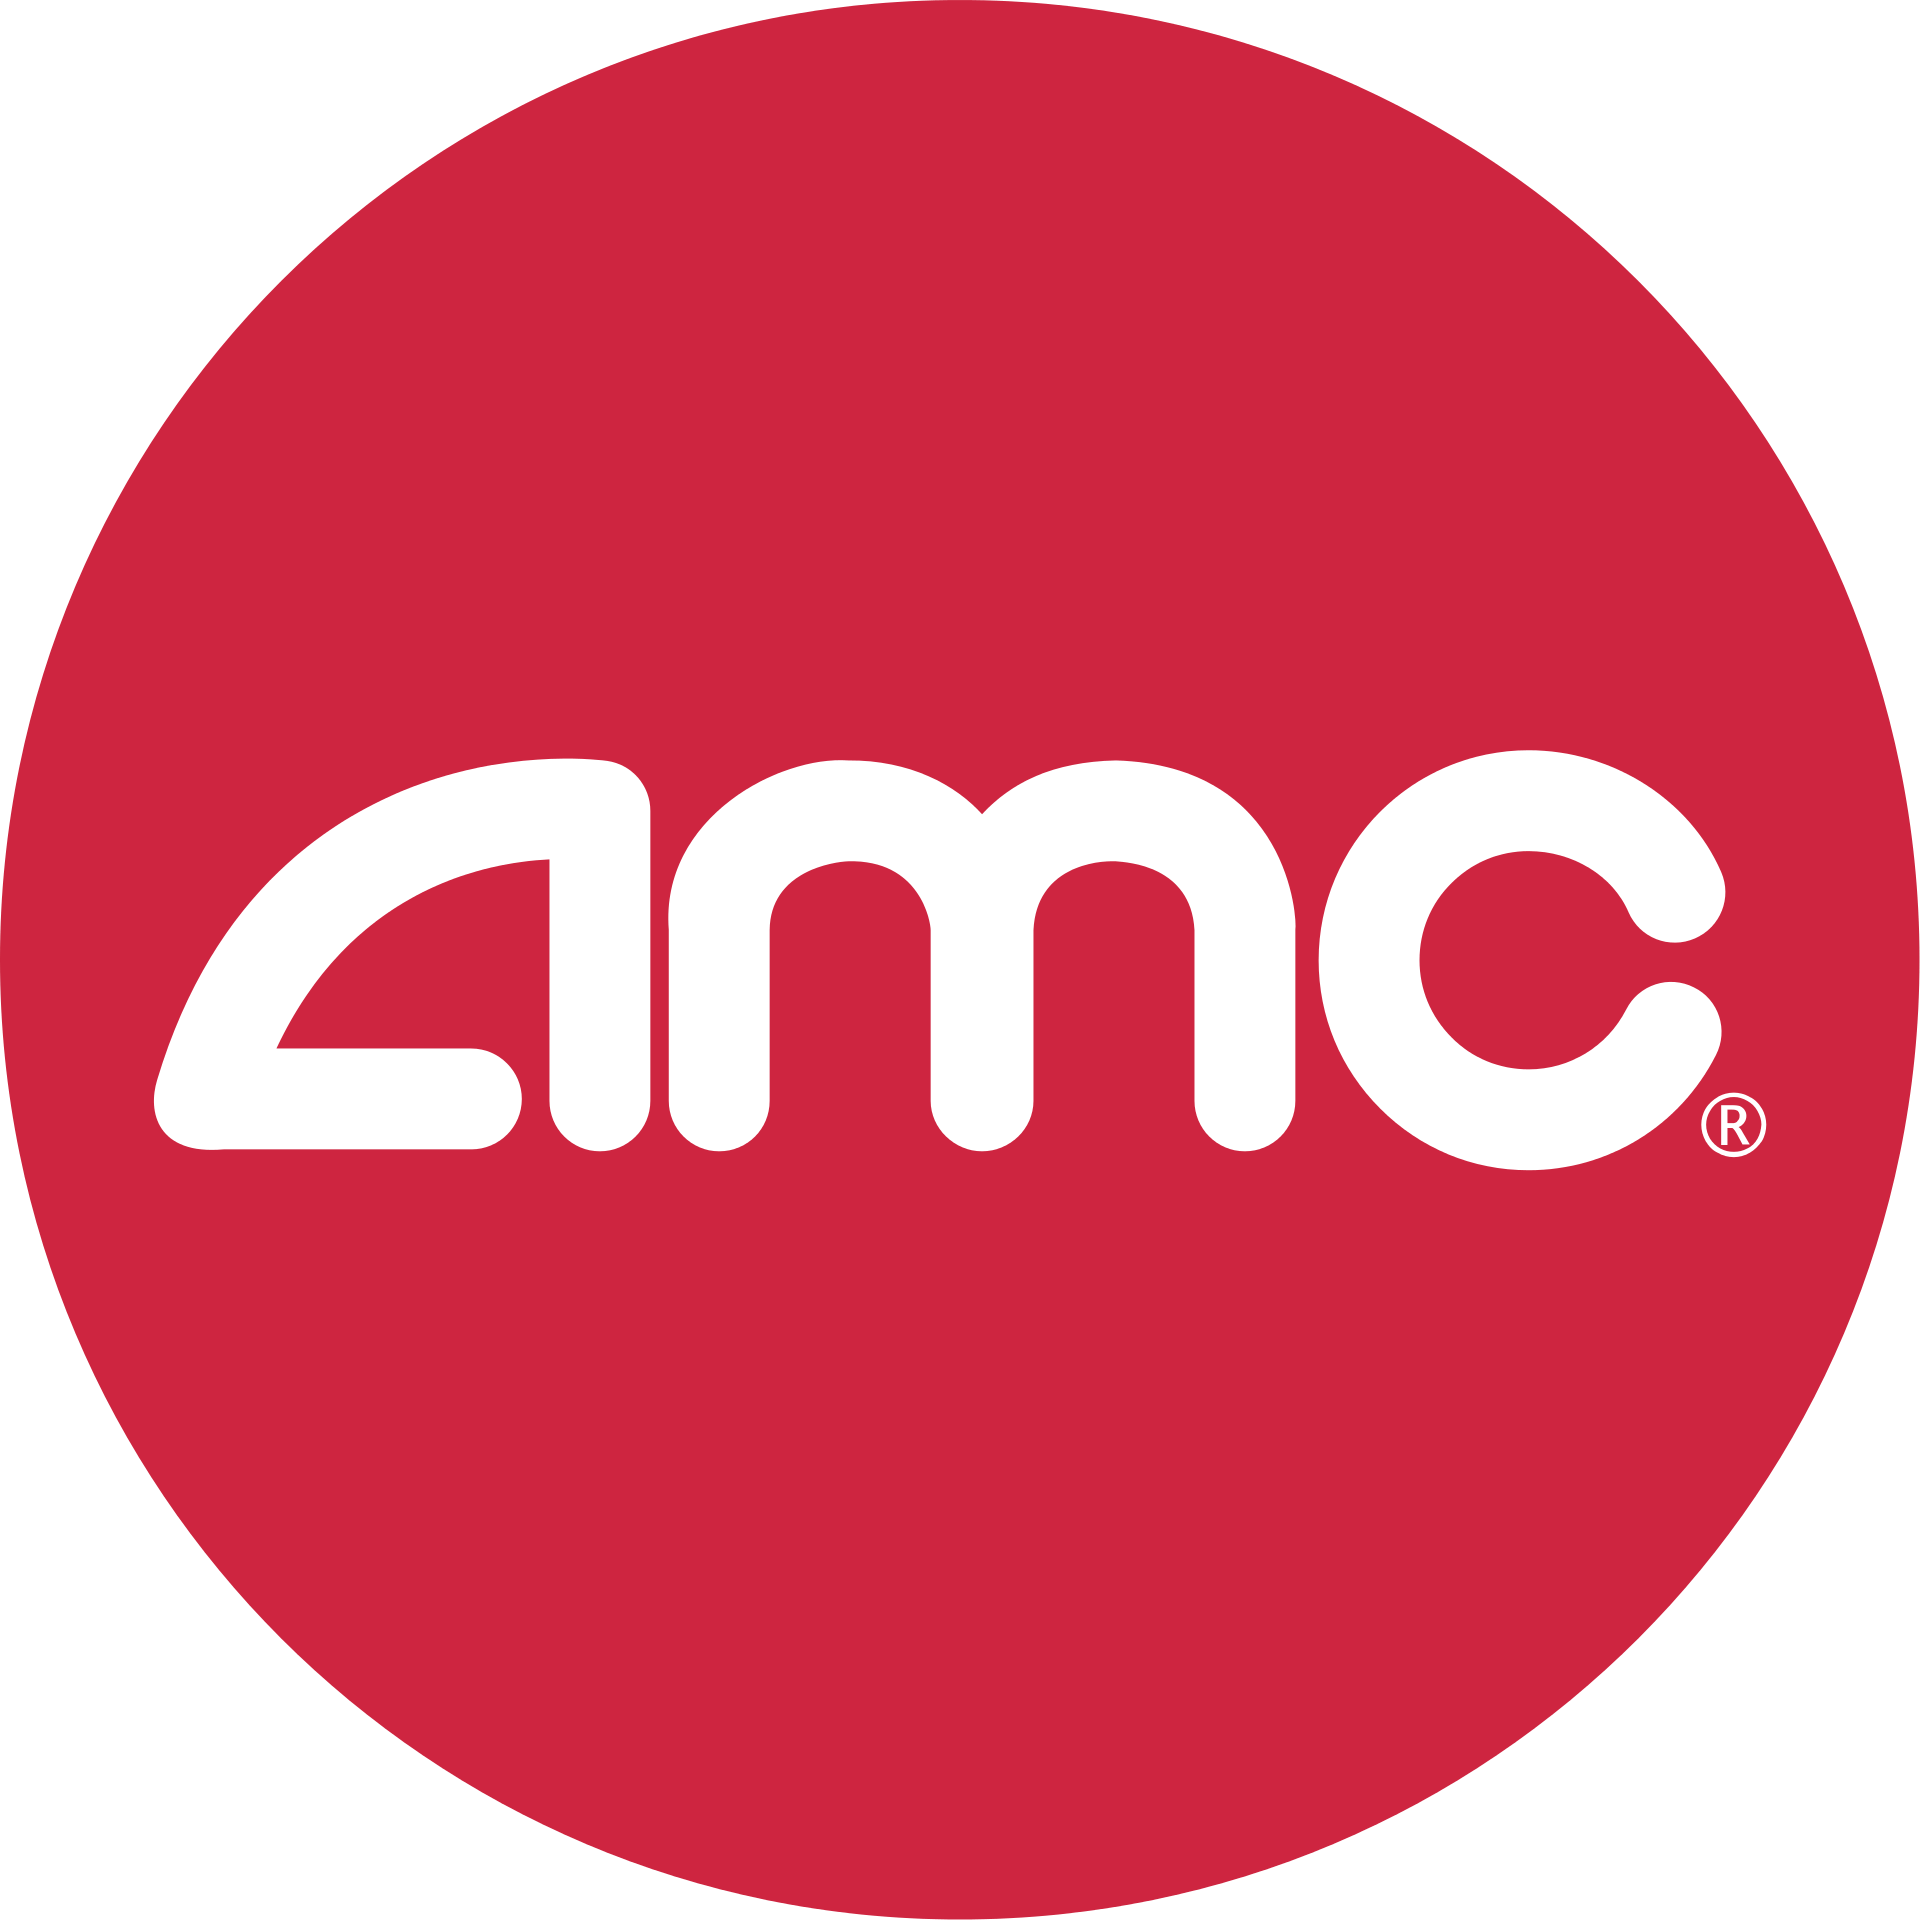 Atom Tickets: Select AMC Theatres: Large Popcorn 50% Off (Expires January 31, 2020)